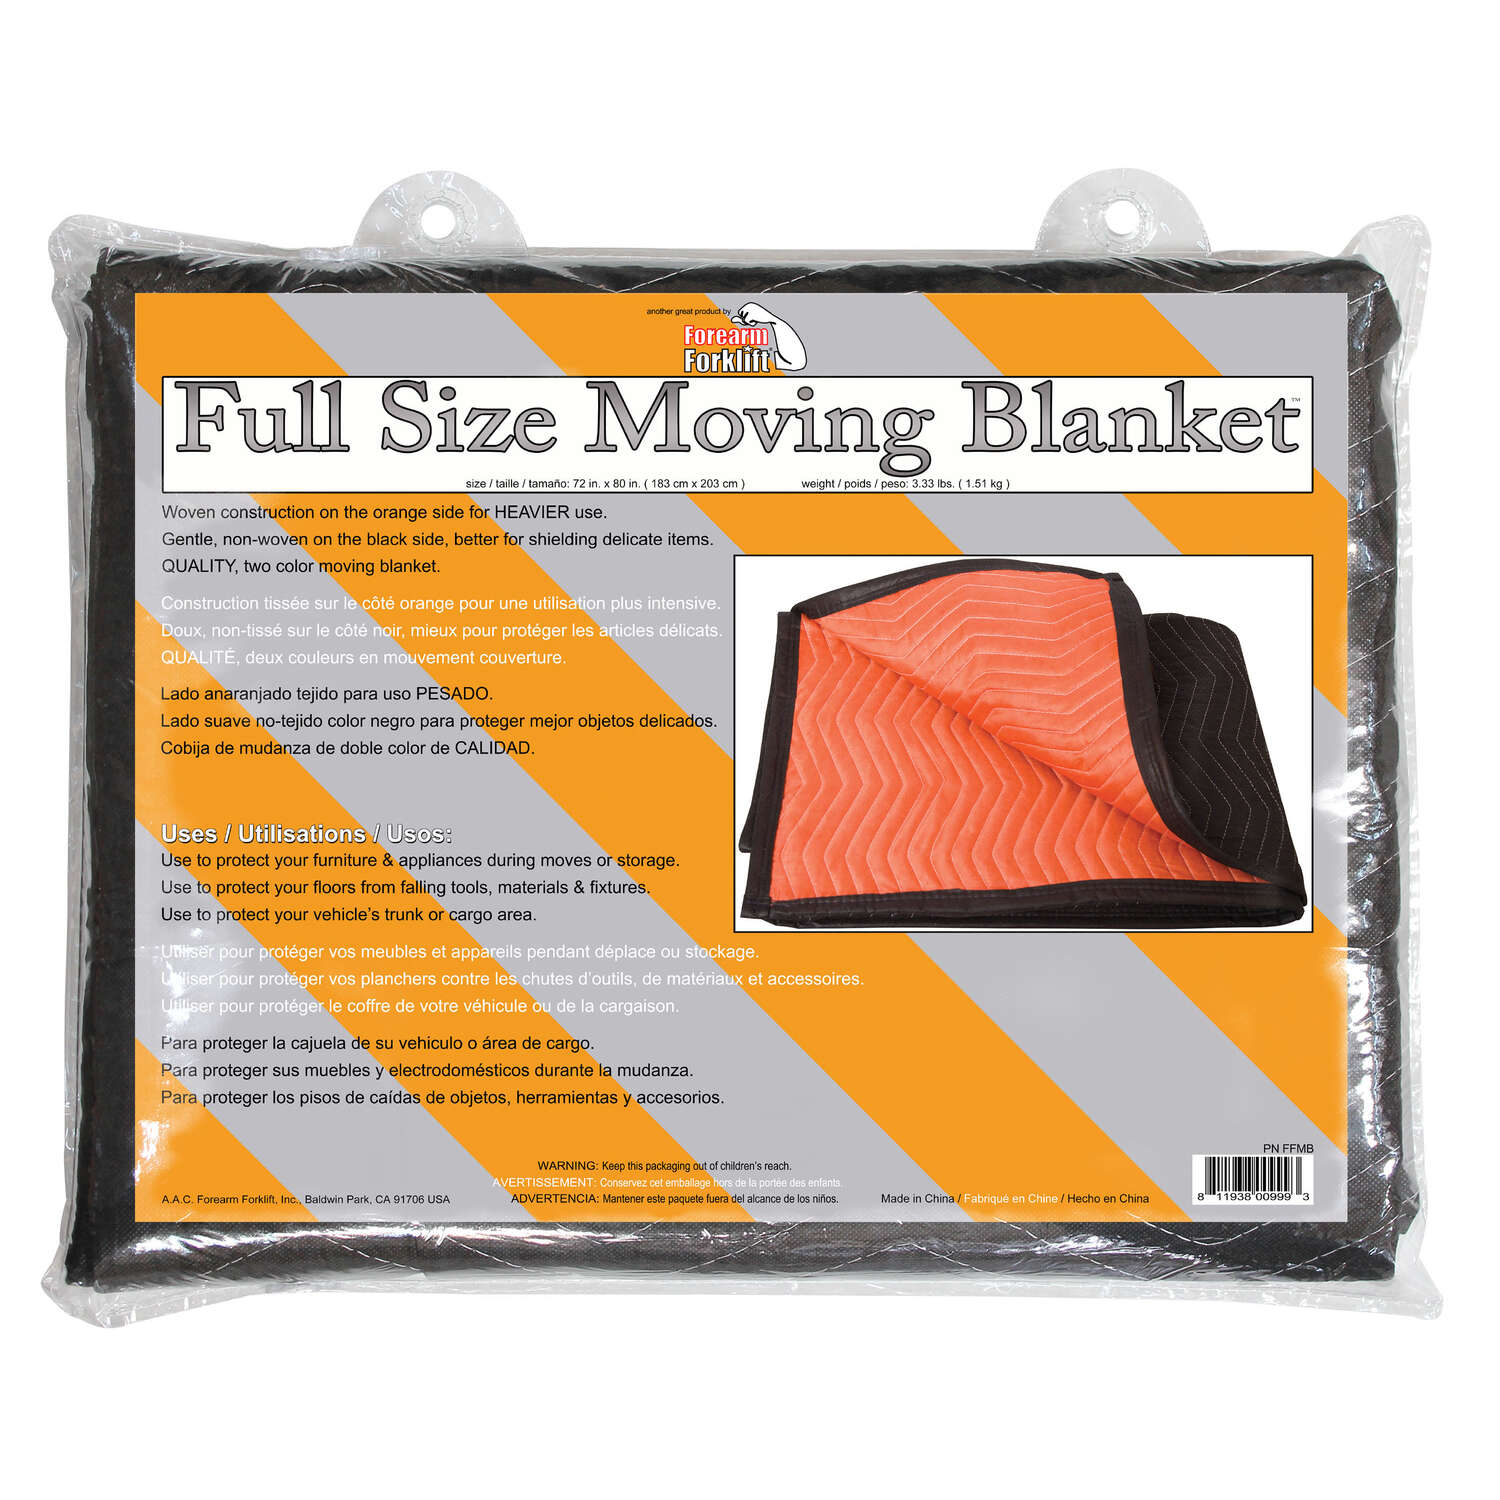 Pin D Oregon Couleur forearm forklift 72 in. w x 80 in. l movers blanket - ace